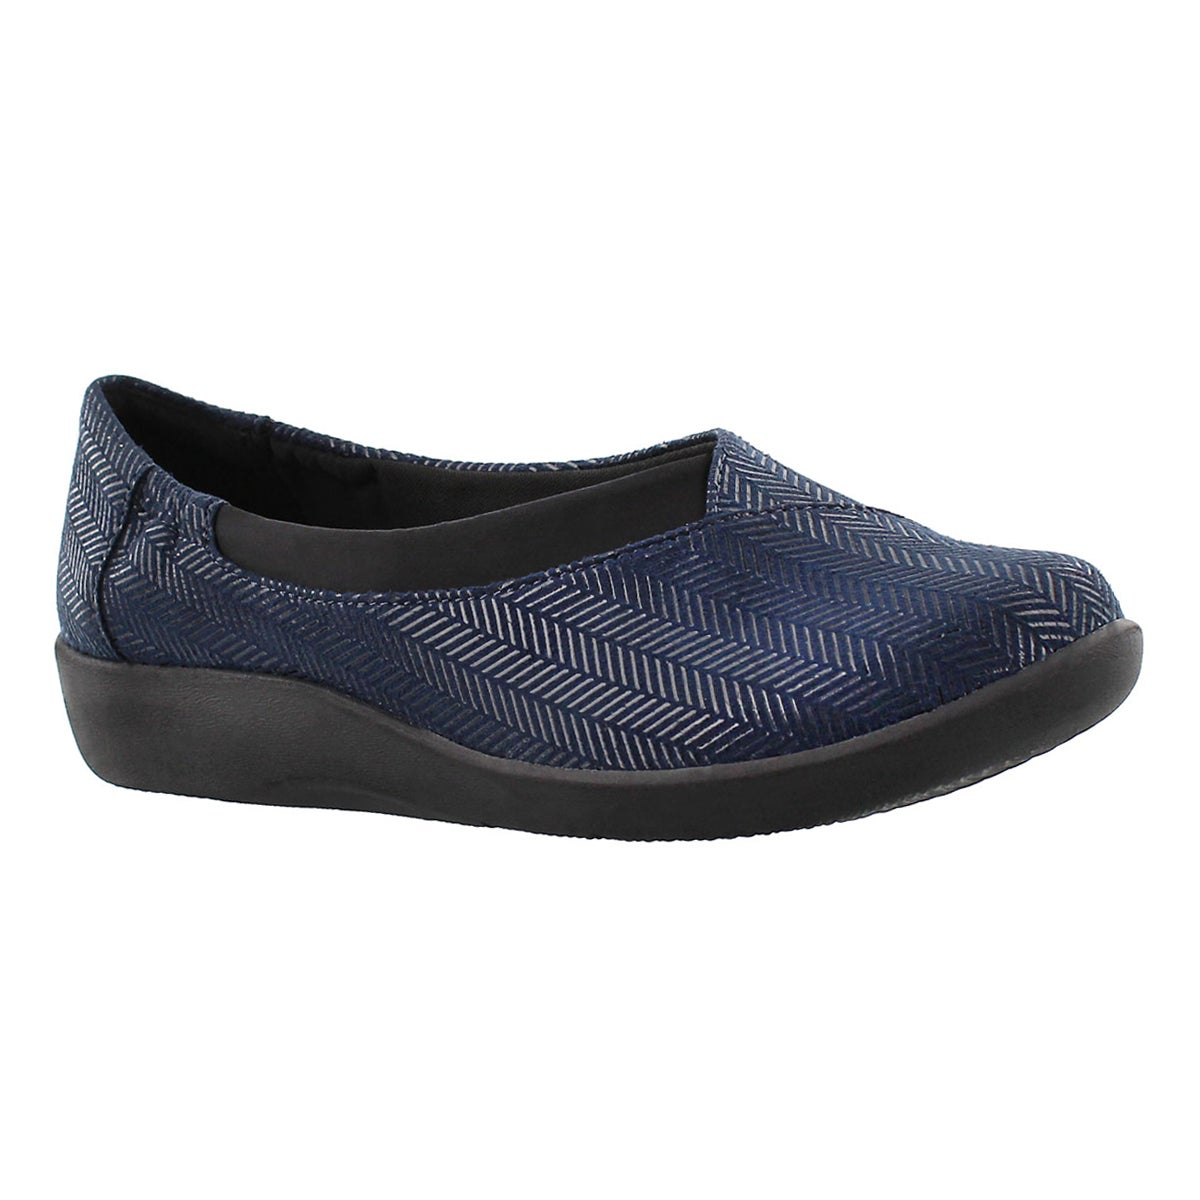 Women's SILLIAN JETAY navy casual slip ons